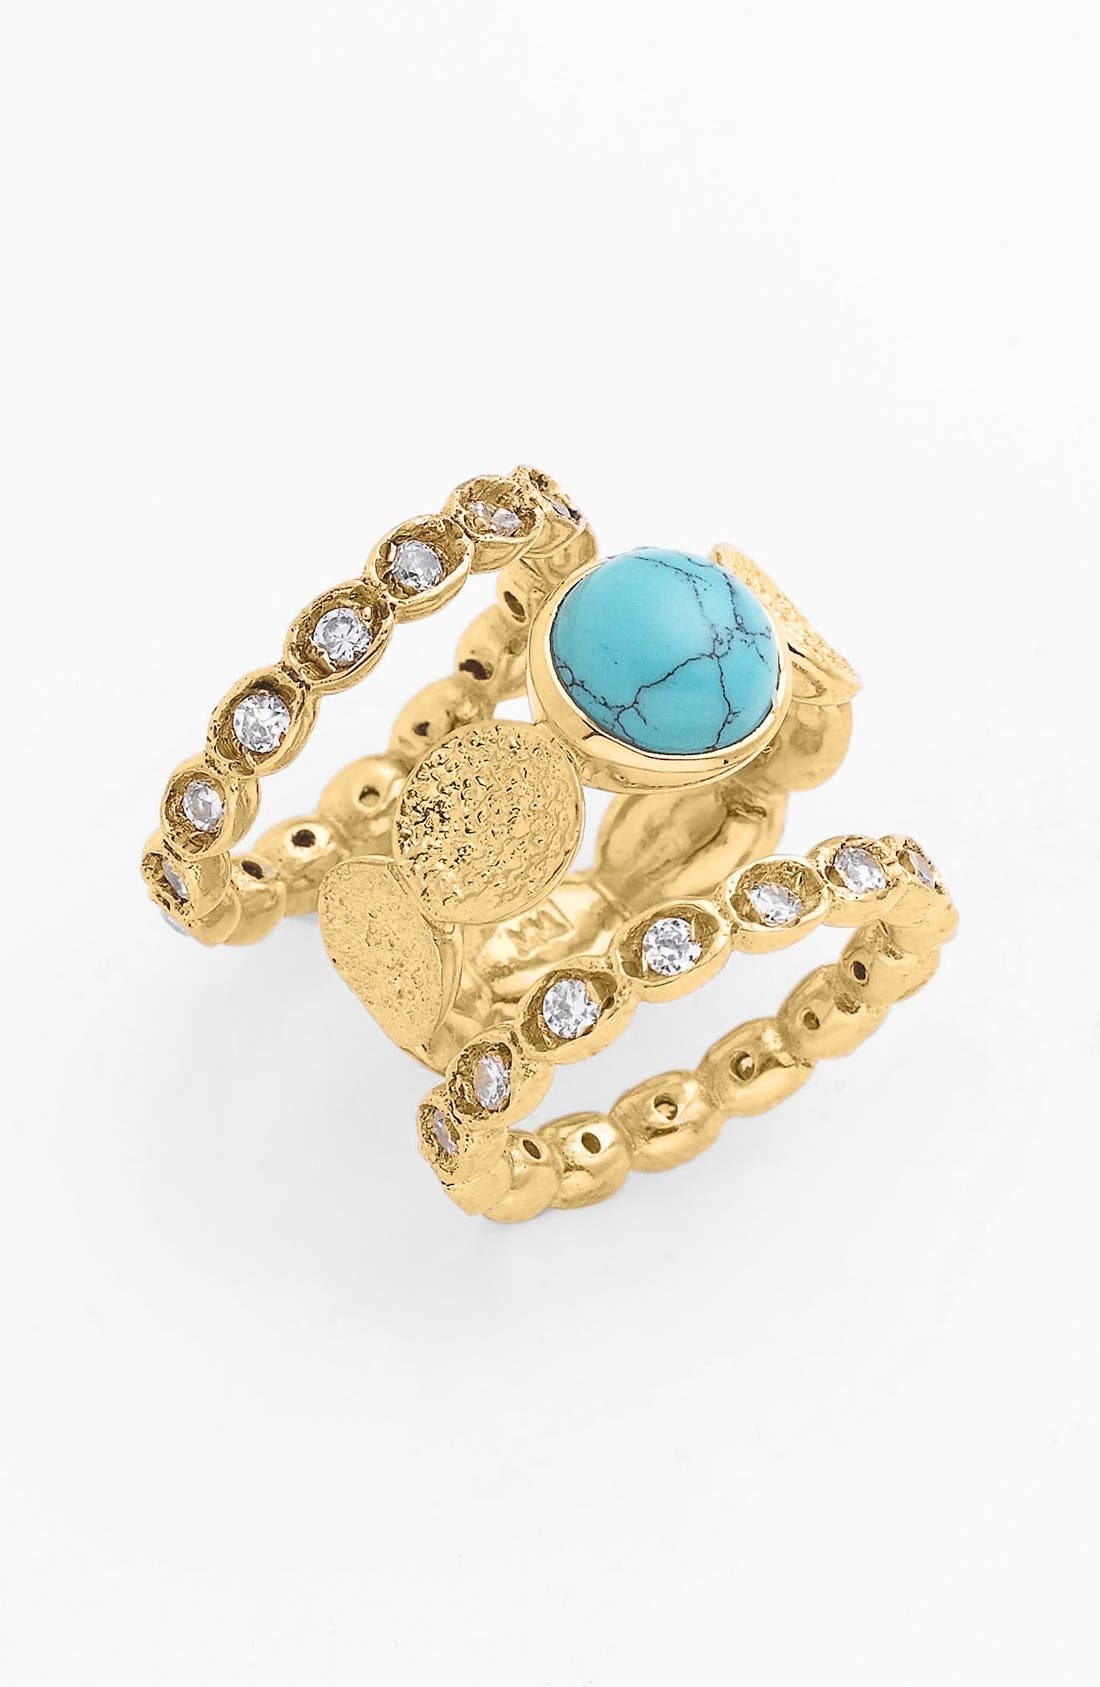 Alternate Image 1 Selected - Melinda Maria 'Montague' Stackable Rings (Set of 3) (Nordstrom Exclusive)